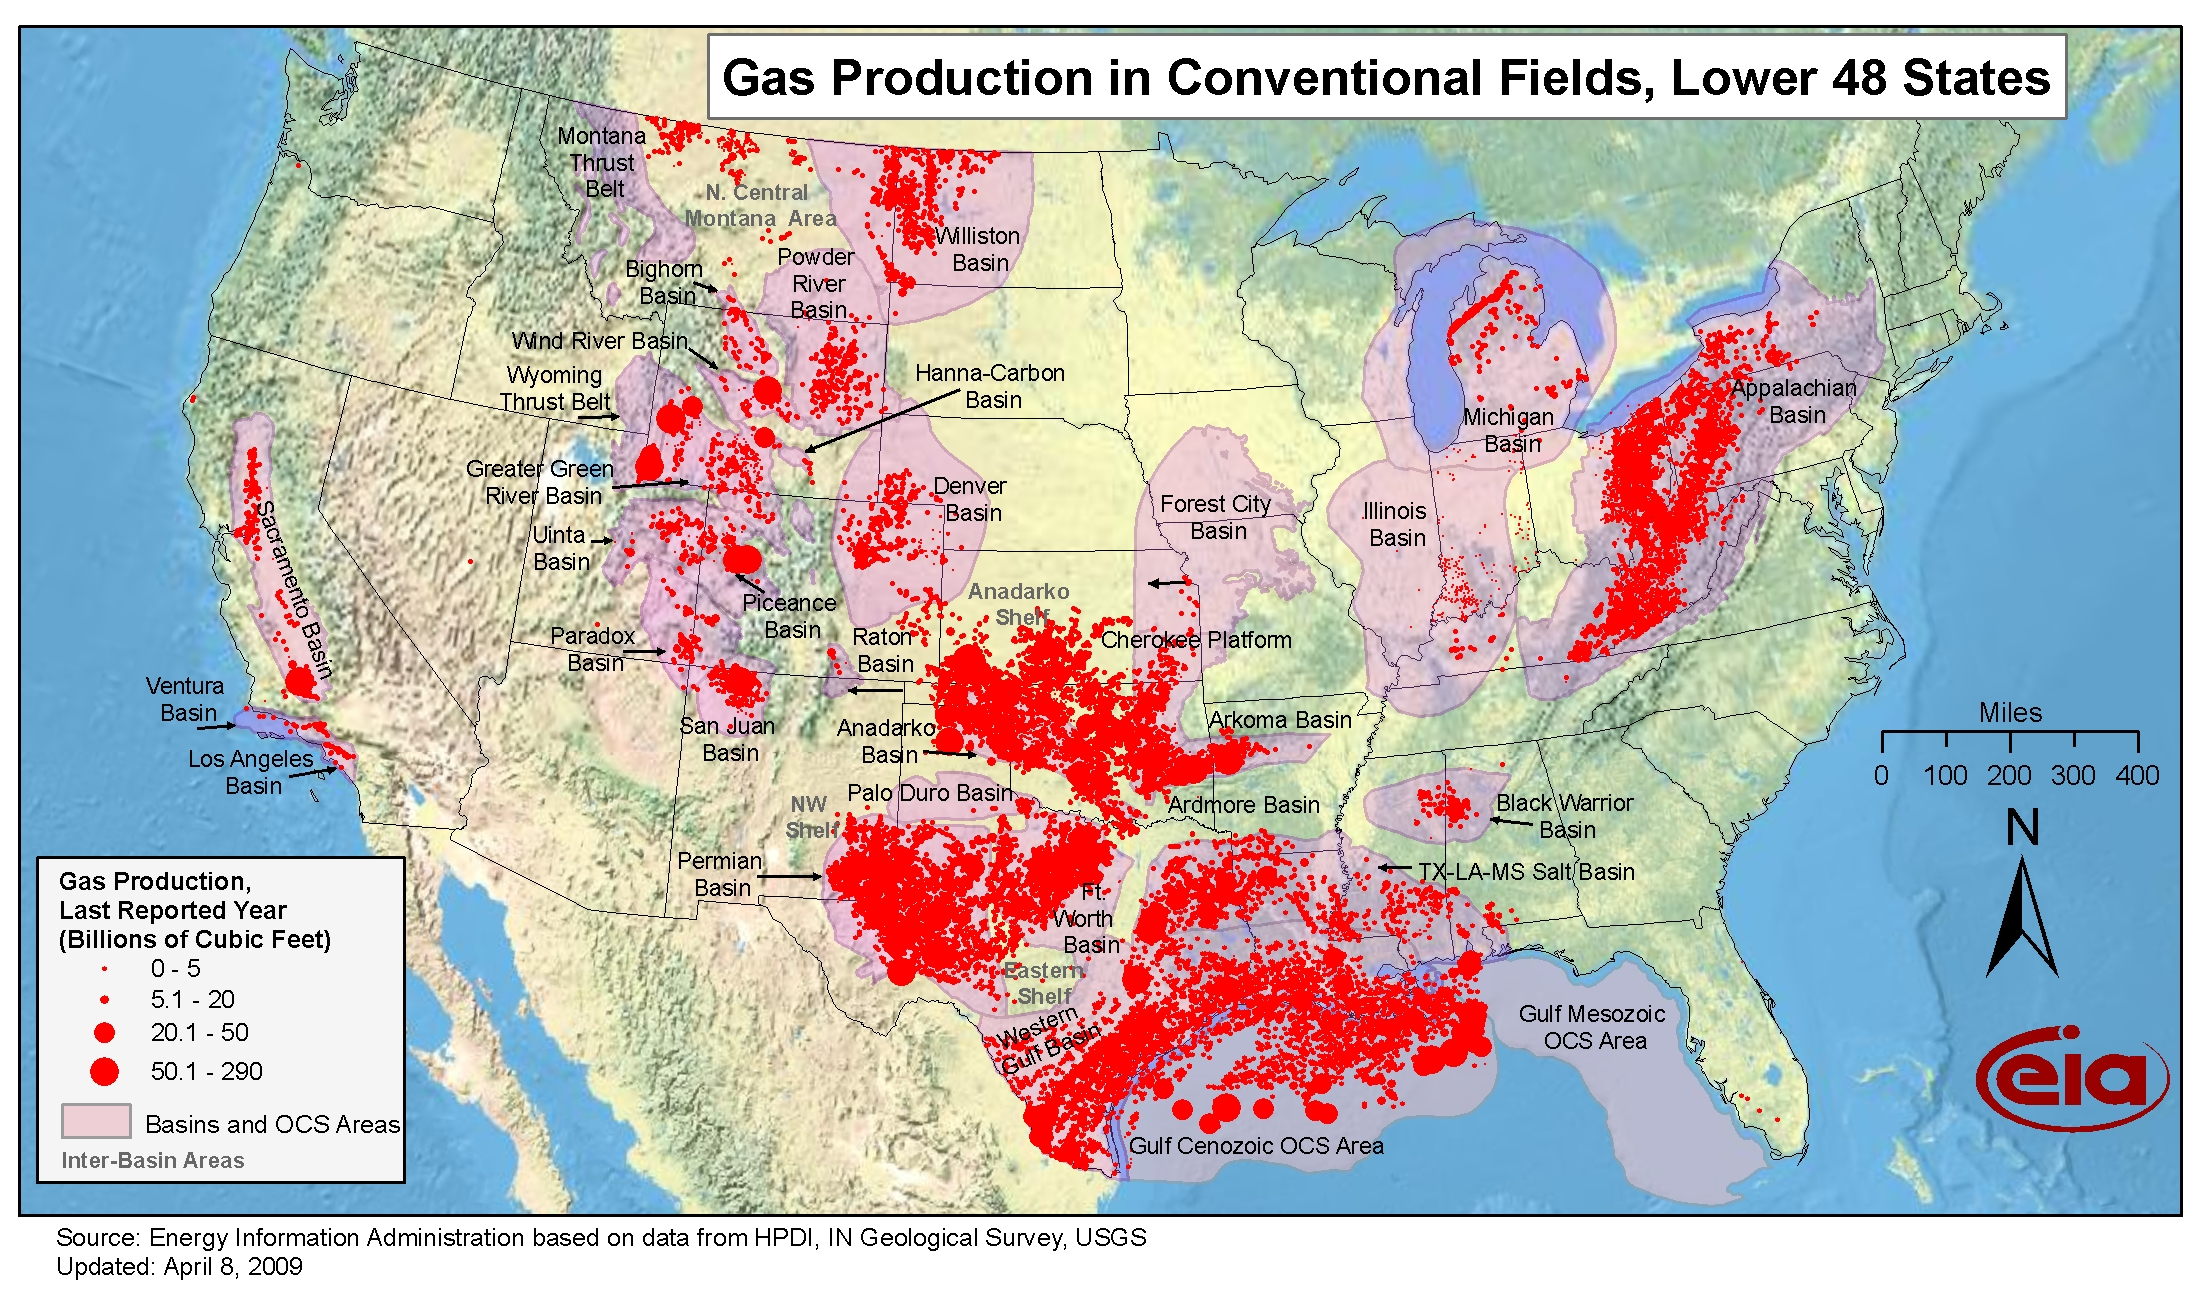 http://legacy.lib.utexas.edu/maps/united_states/us_gas_production_in_conventional_fields-2009.jpg